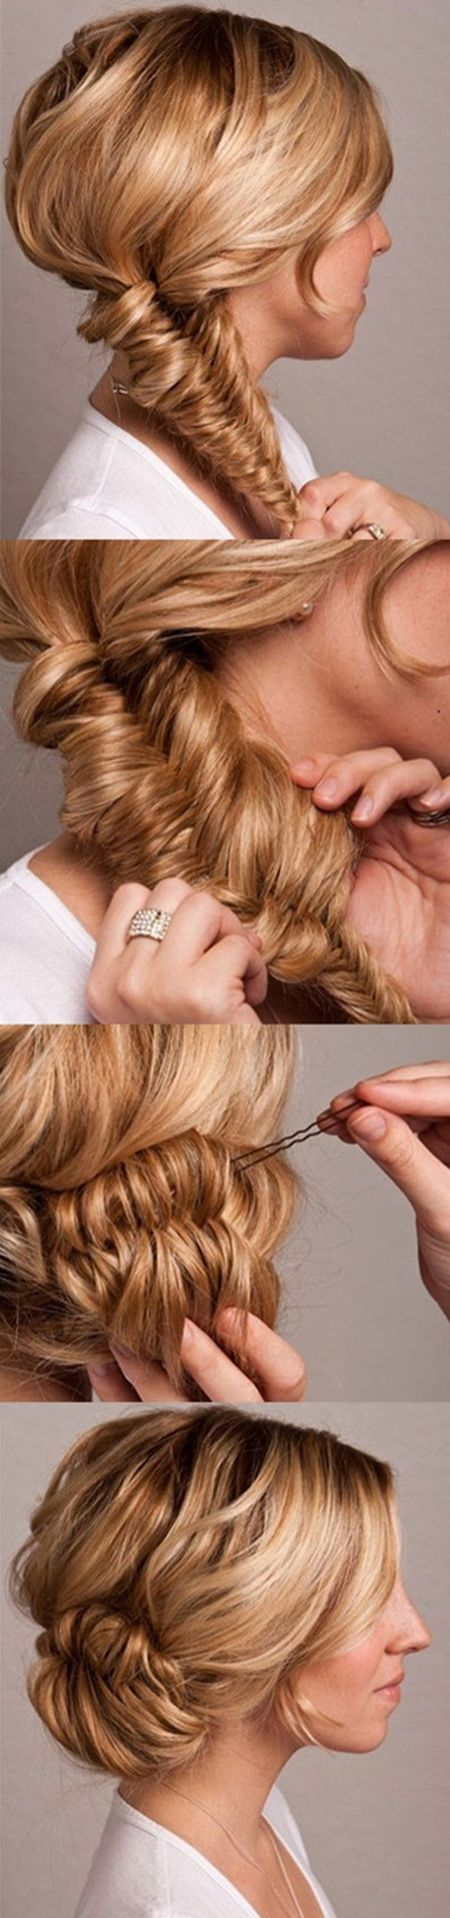 Fishtail bun wedding hair tutorial once wed fishtail bun wedding hair tutorial pin it 2 heres pmusecretfo Image collections